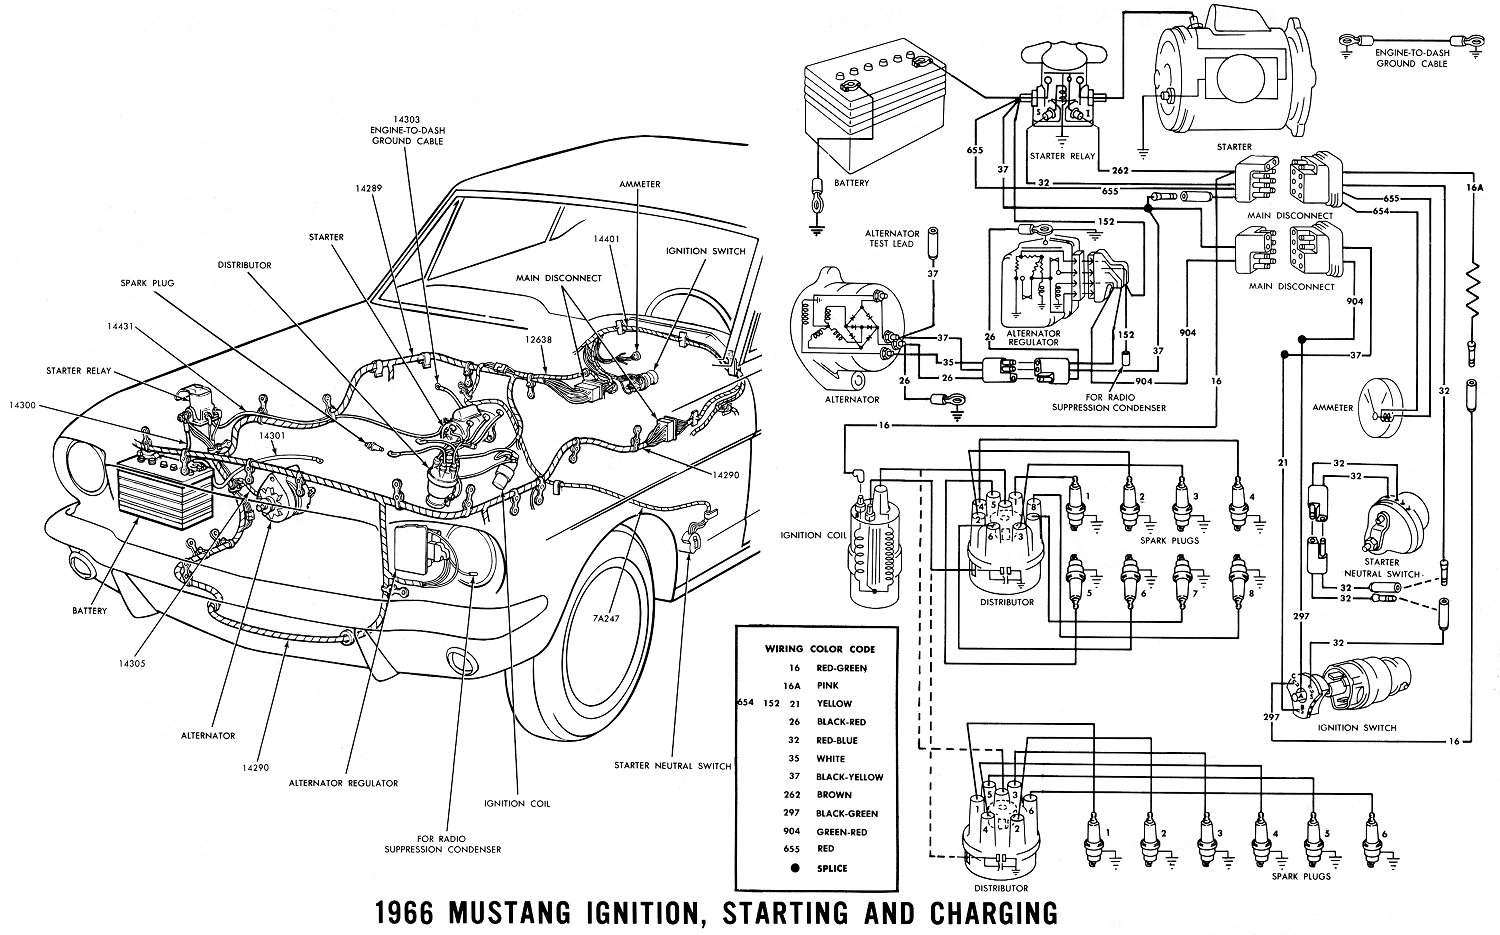 66ignit 1966 mustang wiring diagrams average joe restoration 68 Mustang Wiring Diagram at webbmarketing.co